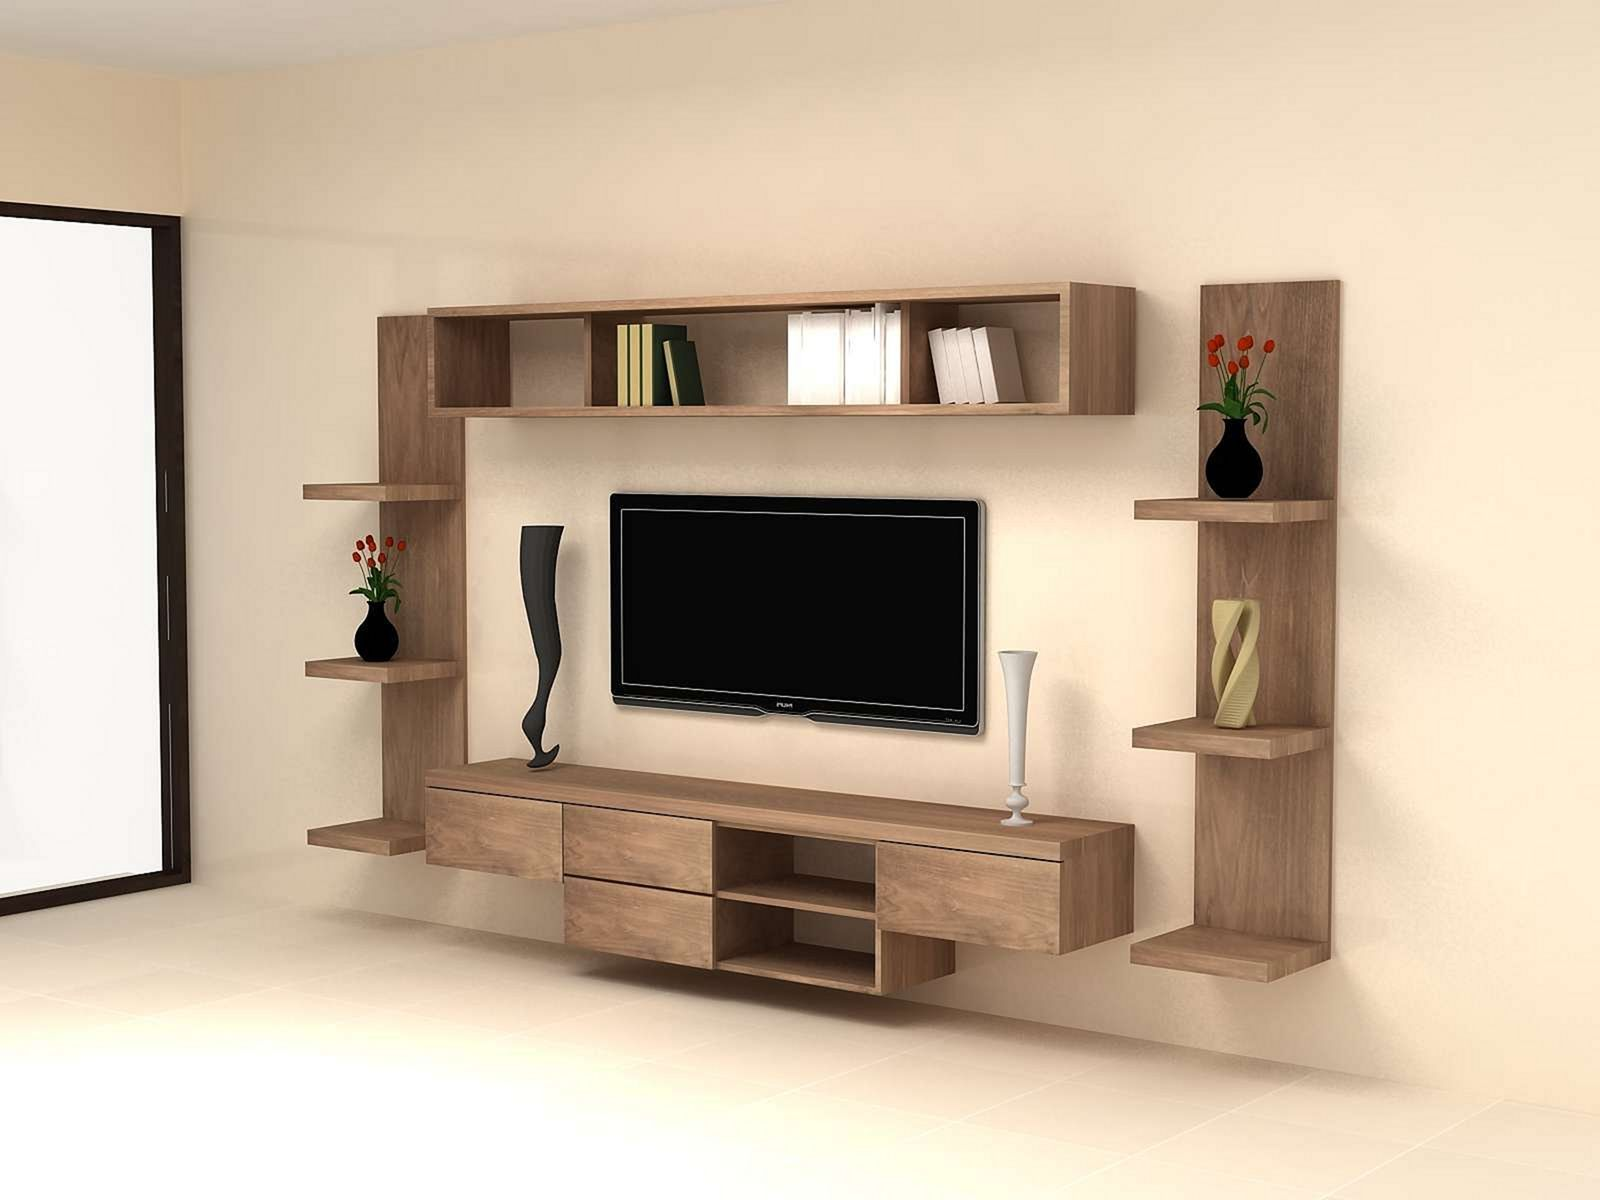 28 Amazing Modern Tv Cabinets Design For Your Home Inspiration